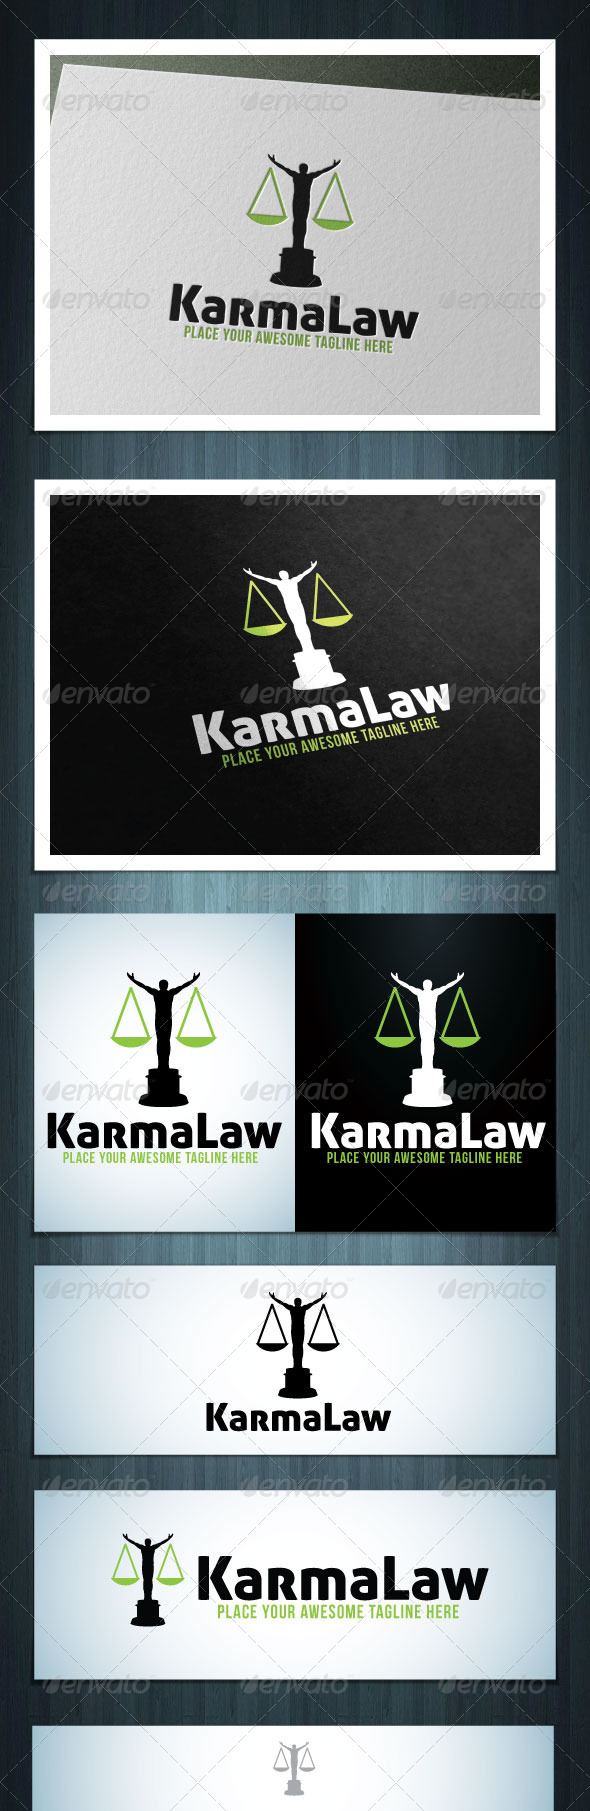 GraphicRiver KarmaLaw 5614858